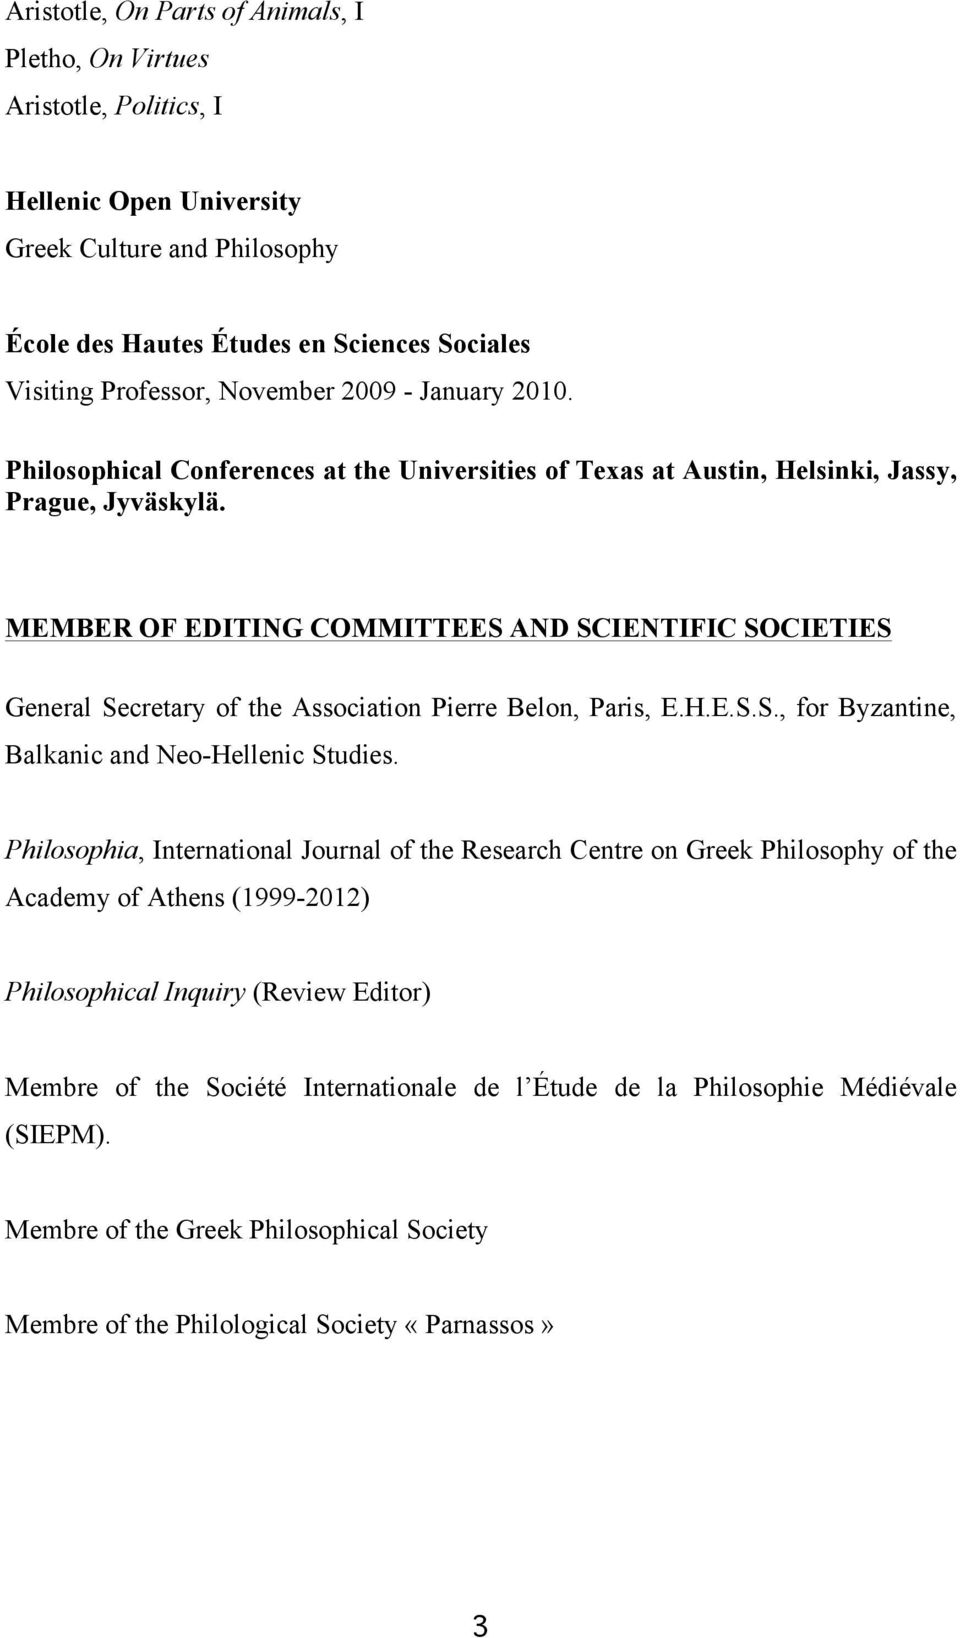 MEMBER OF EDITING COMMITTEES AND SCIENTIFIC SOCIETIES General Secretary of the Association Pierre Belon, Paris, E.H.E.S.S., for Byzantine, Balkanic and Neo-Hellenic Studies.